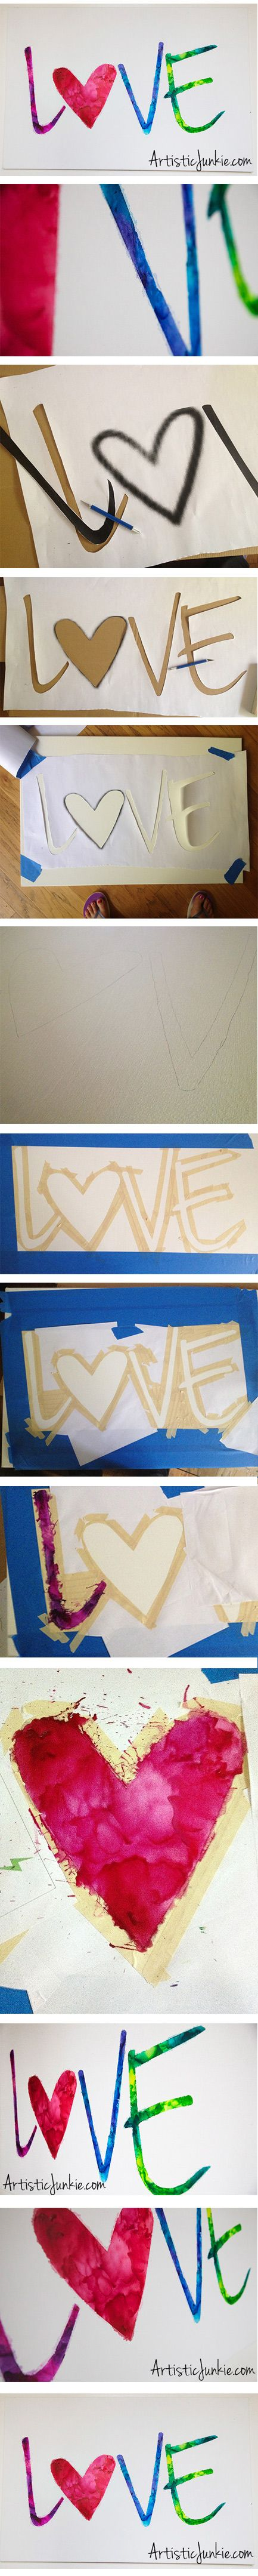 Crayon melting art images amp pictures becuo - Love Melted Crayon Art Diy Tutorial